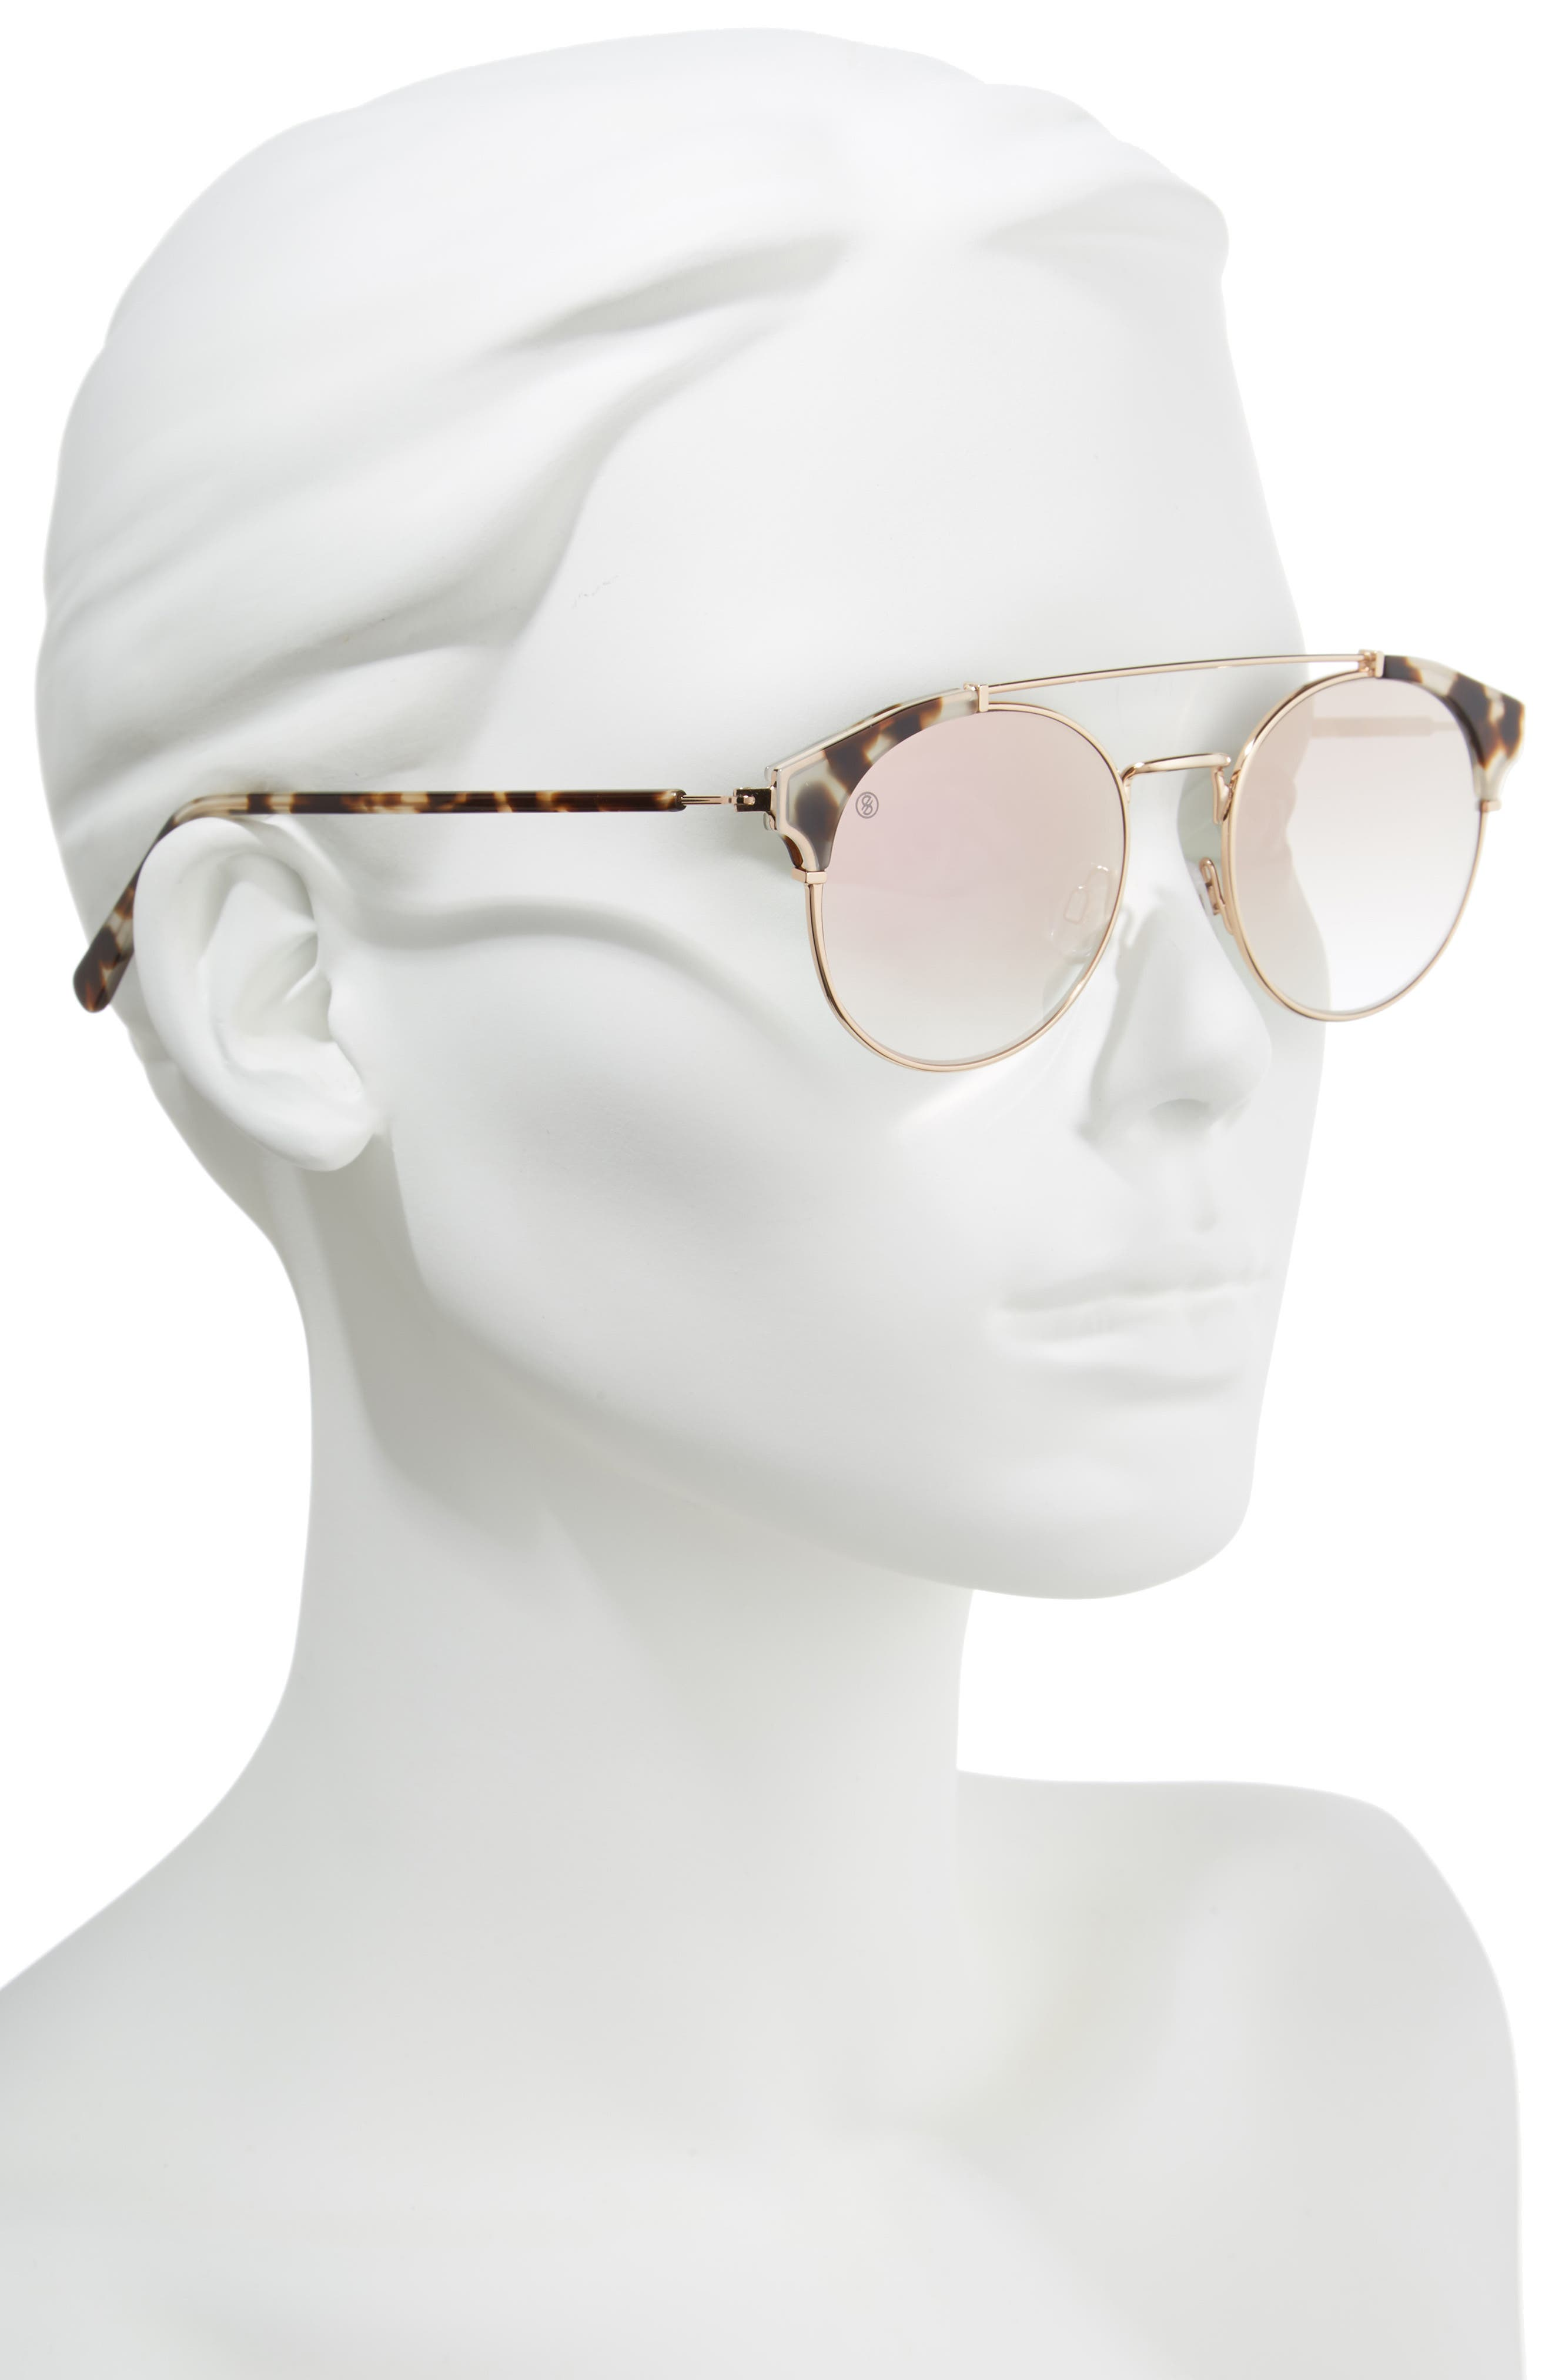 D'BLANC x Amuse Society Dosed Marquis 52mm Gradient Round Aviator Sunglasses,                             Alternate thumbnail 2, color,                             Snow Leopard/ Rose Flash